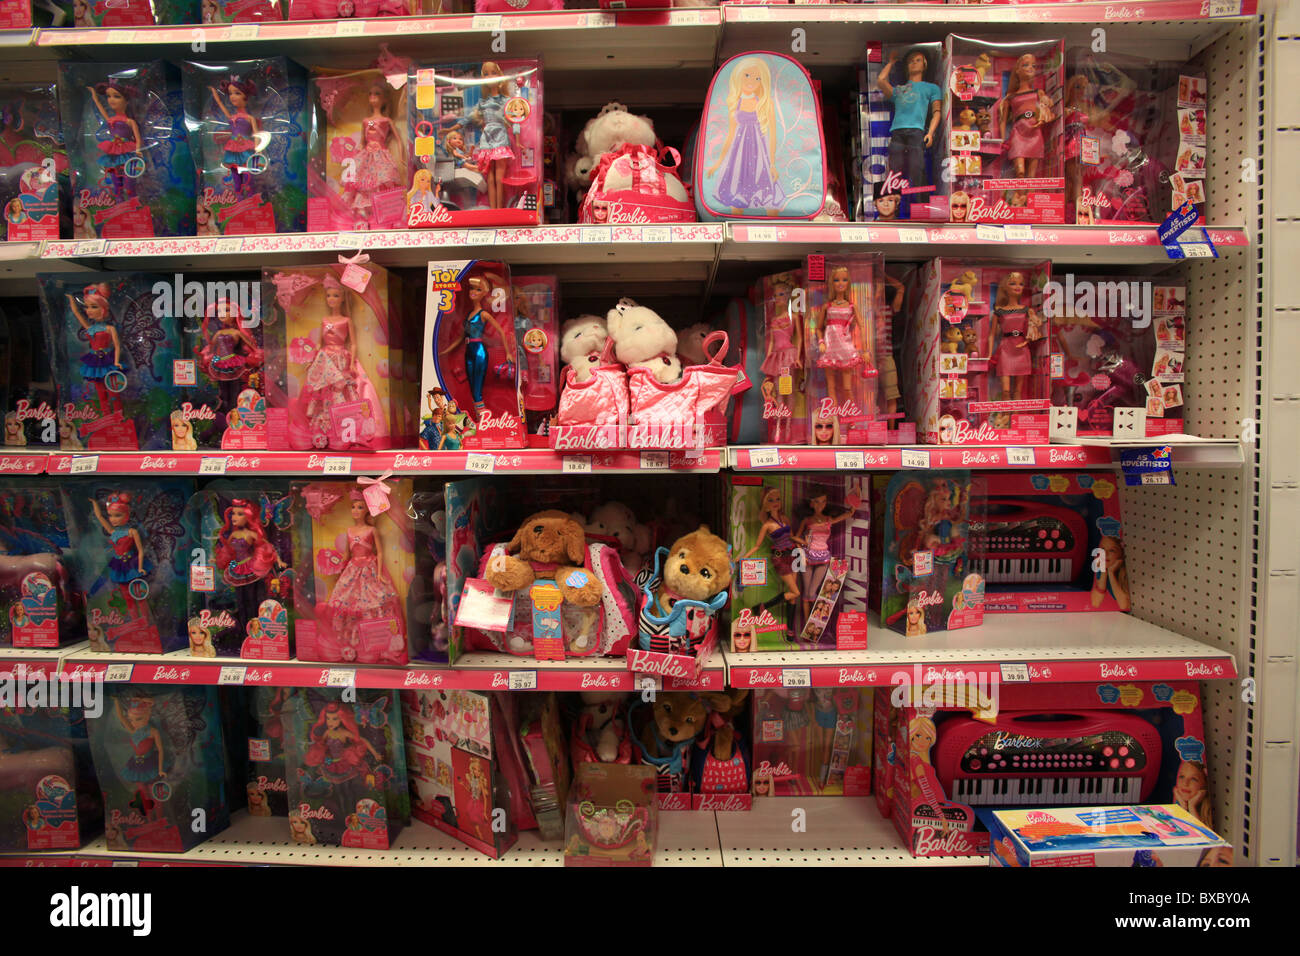 Barbie dolls in Toys R Us store, Ontario, Canada Stock ...